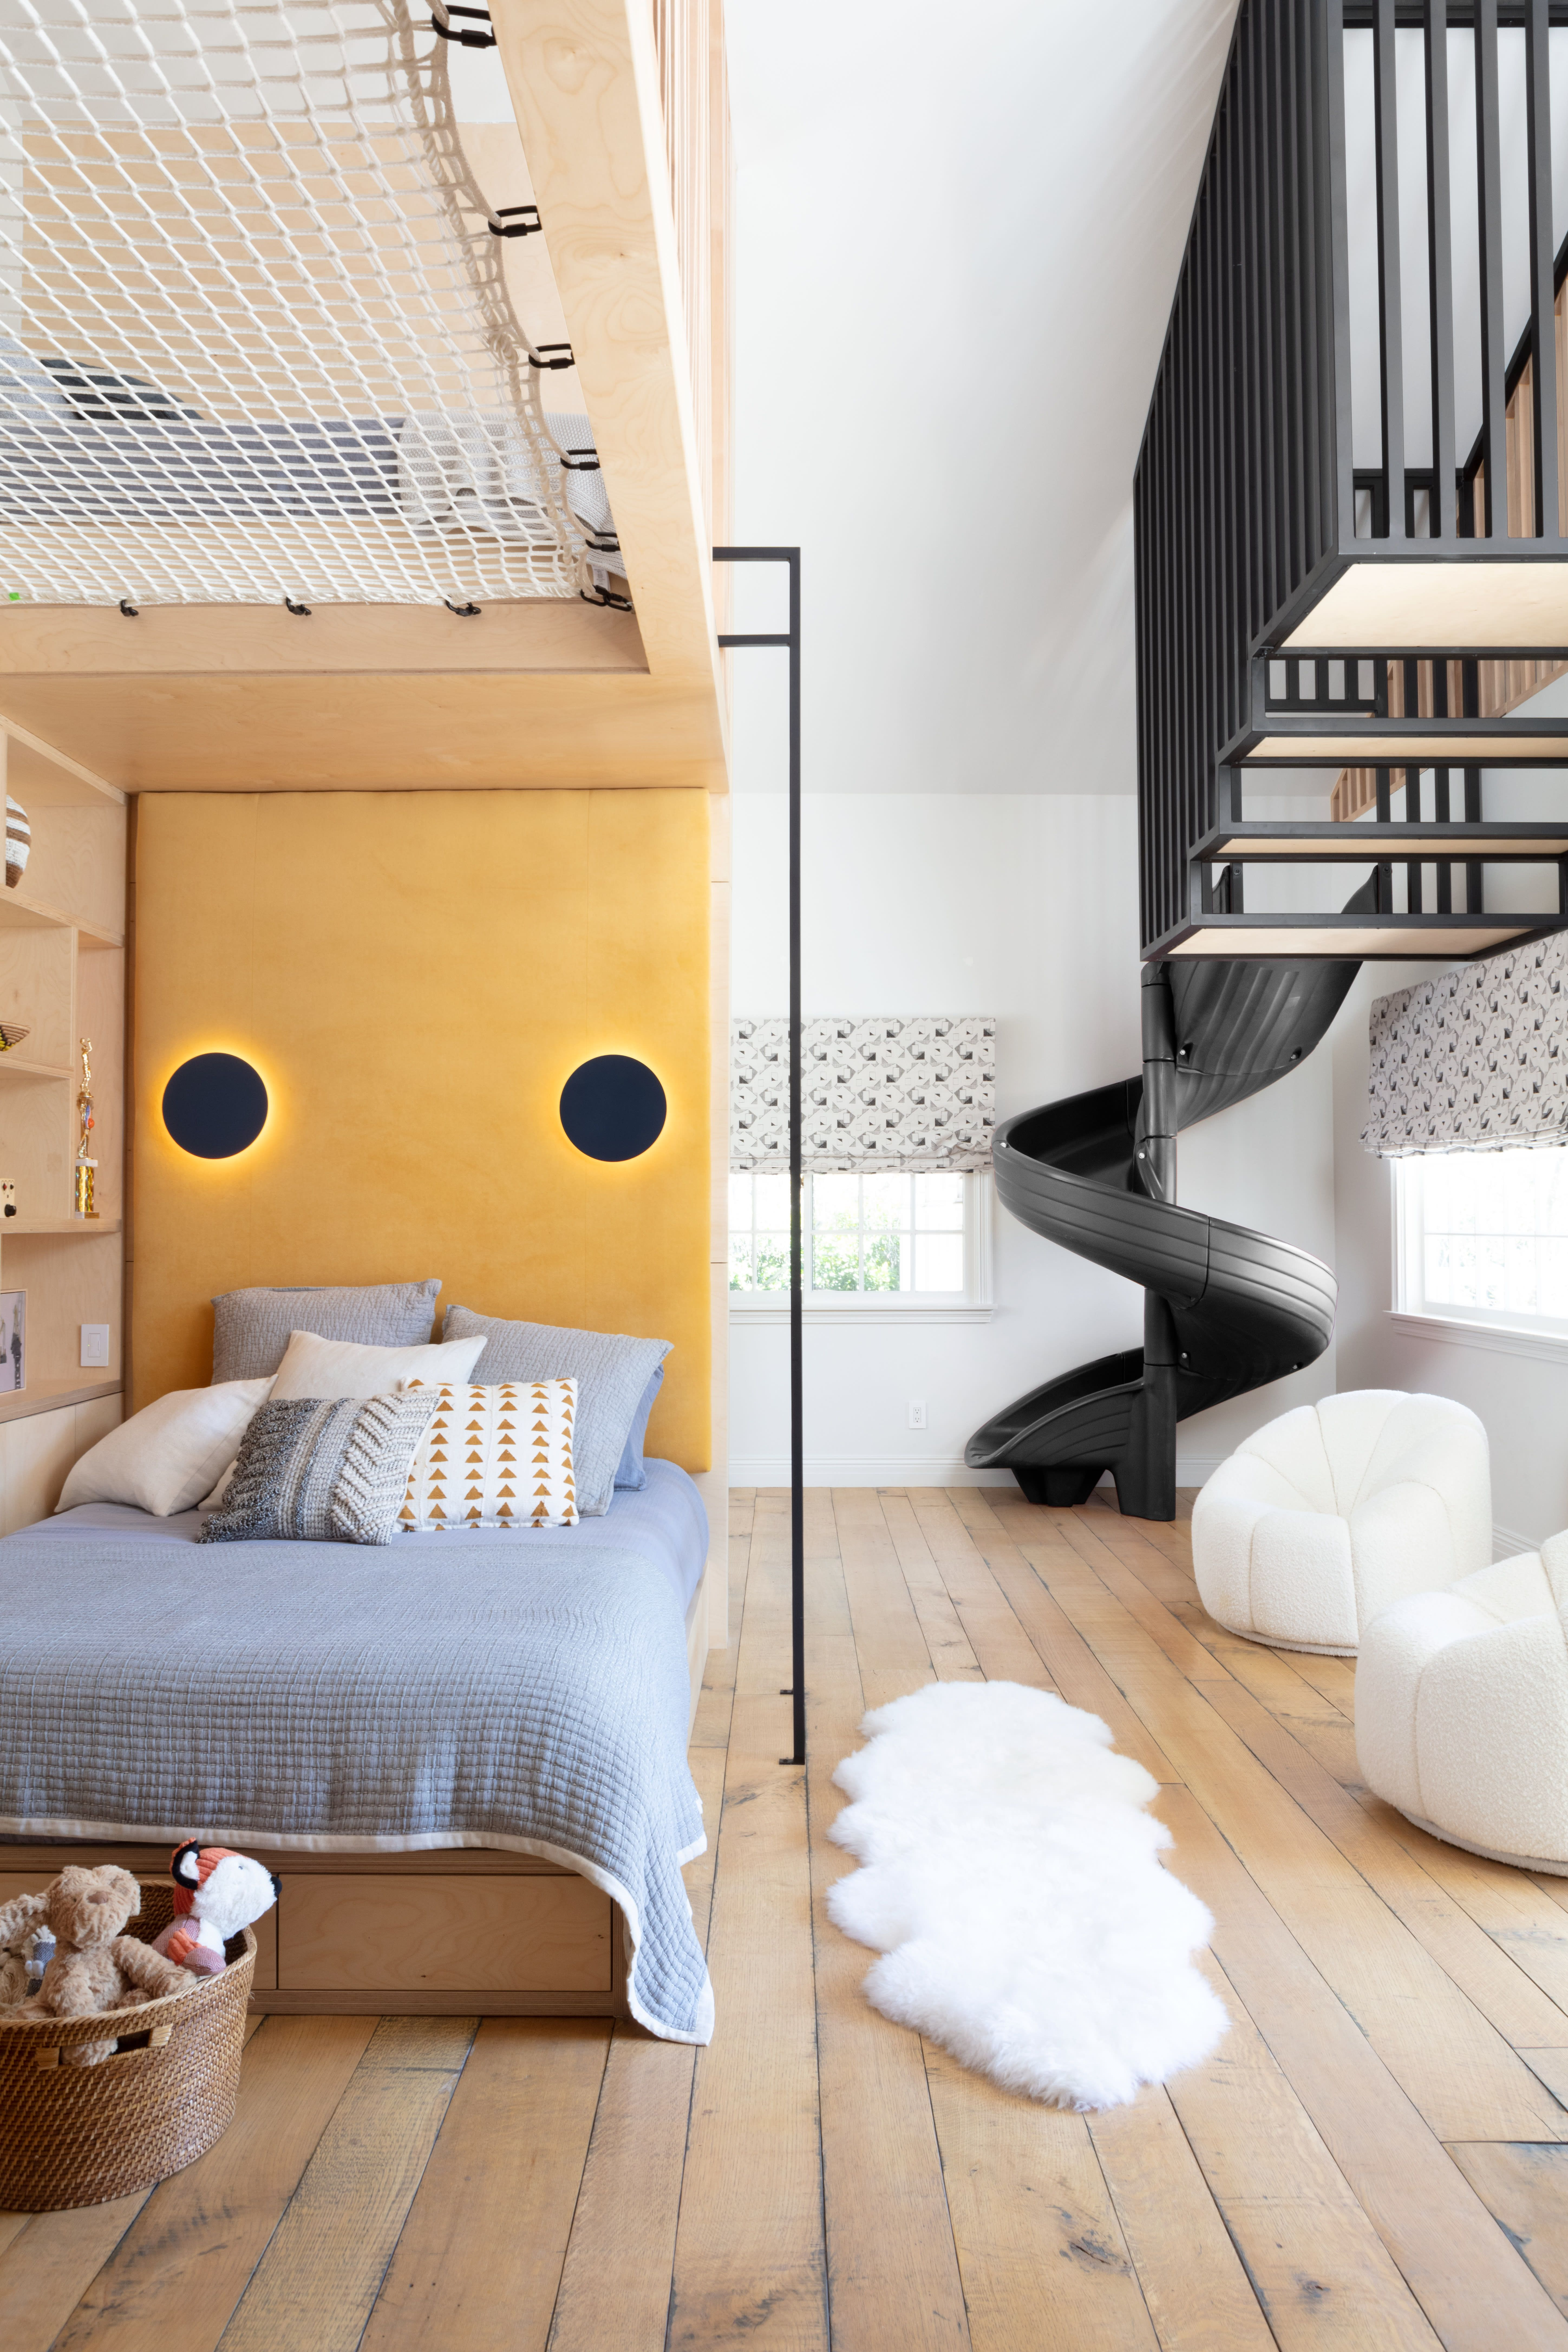 3 Kids Bedroom Ideas We Learned From This Playful L.A